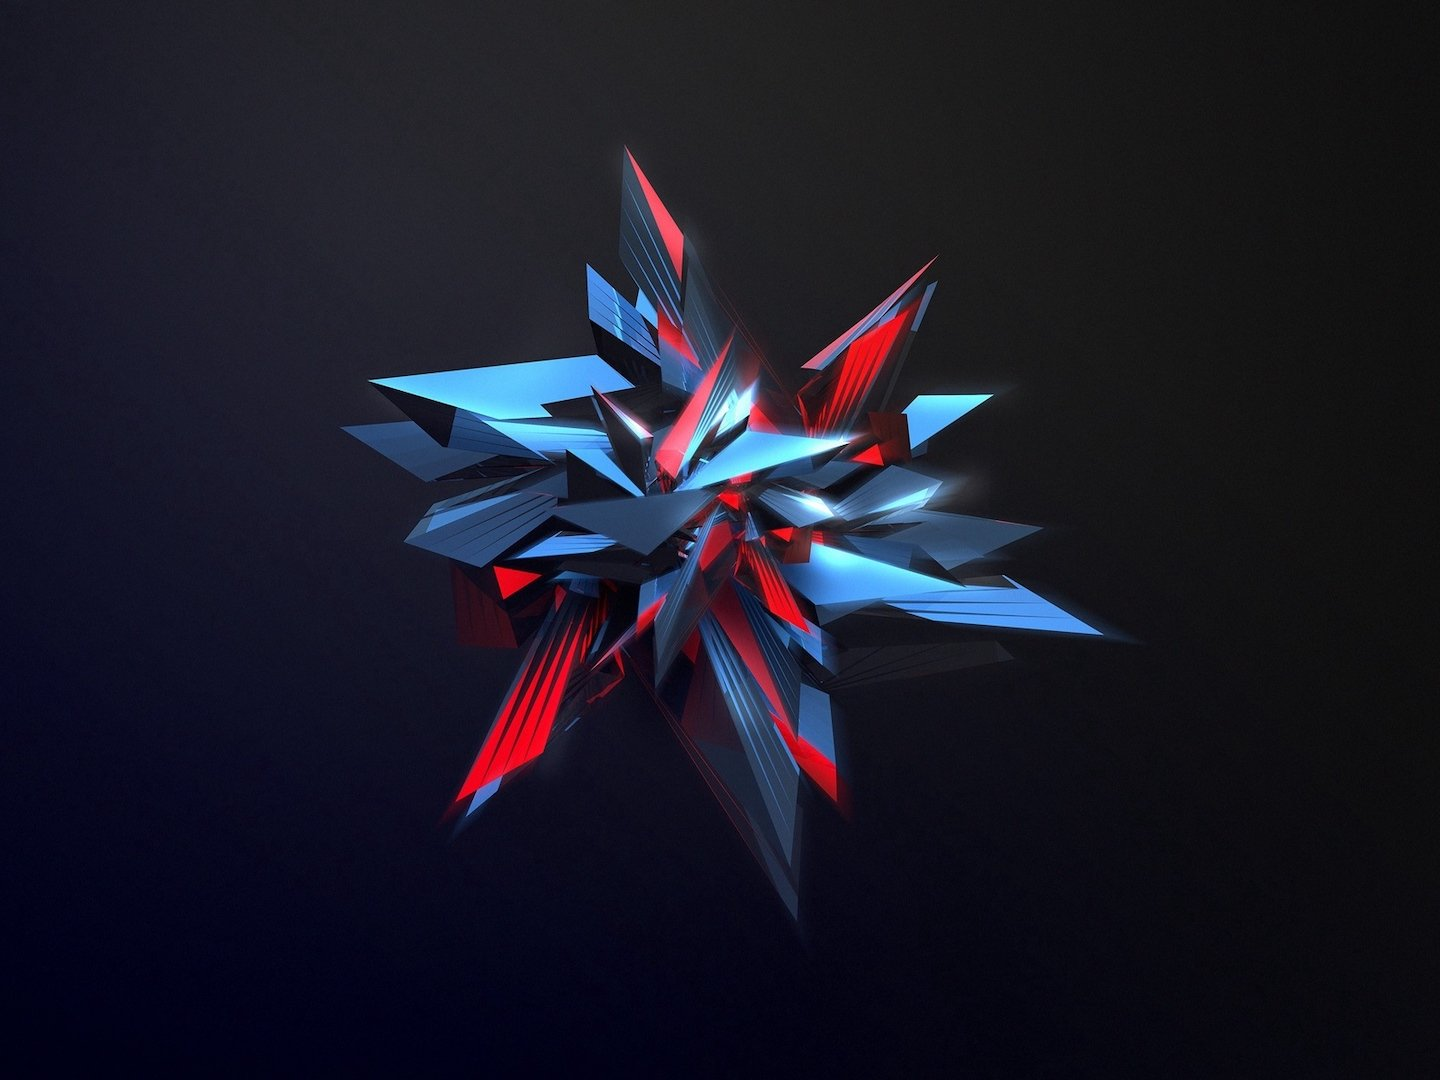 20 Creative Abstract Wallpapers For Your Smartphone